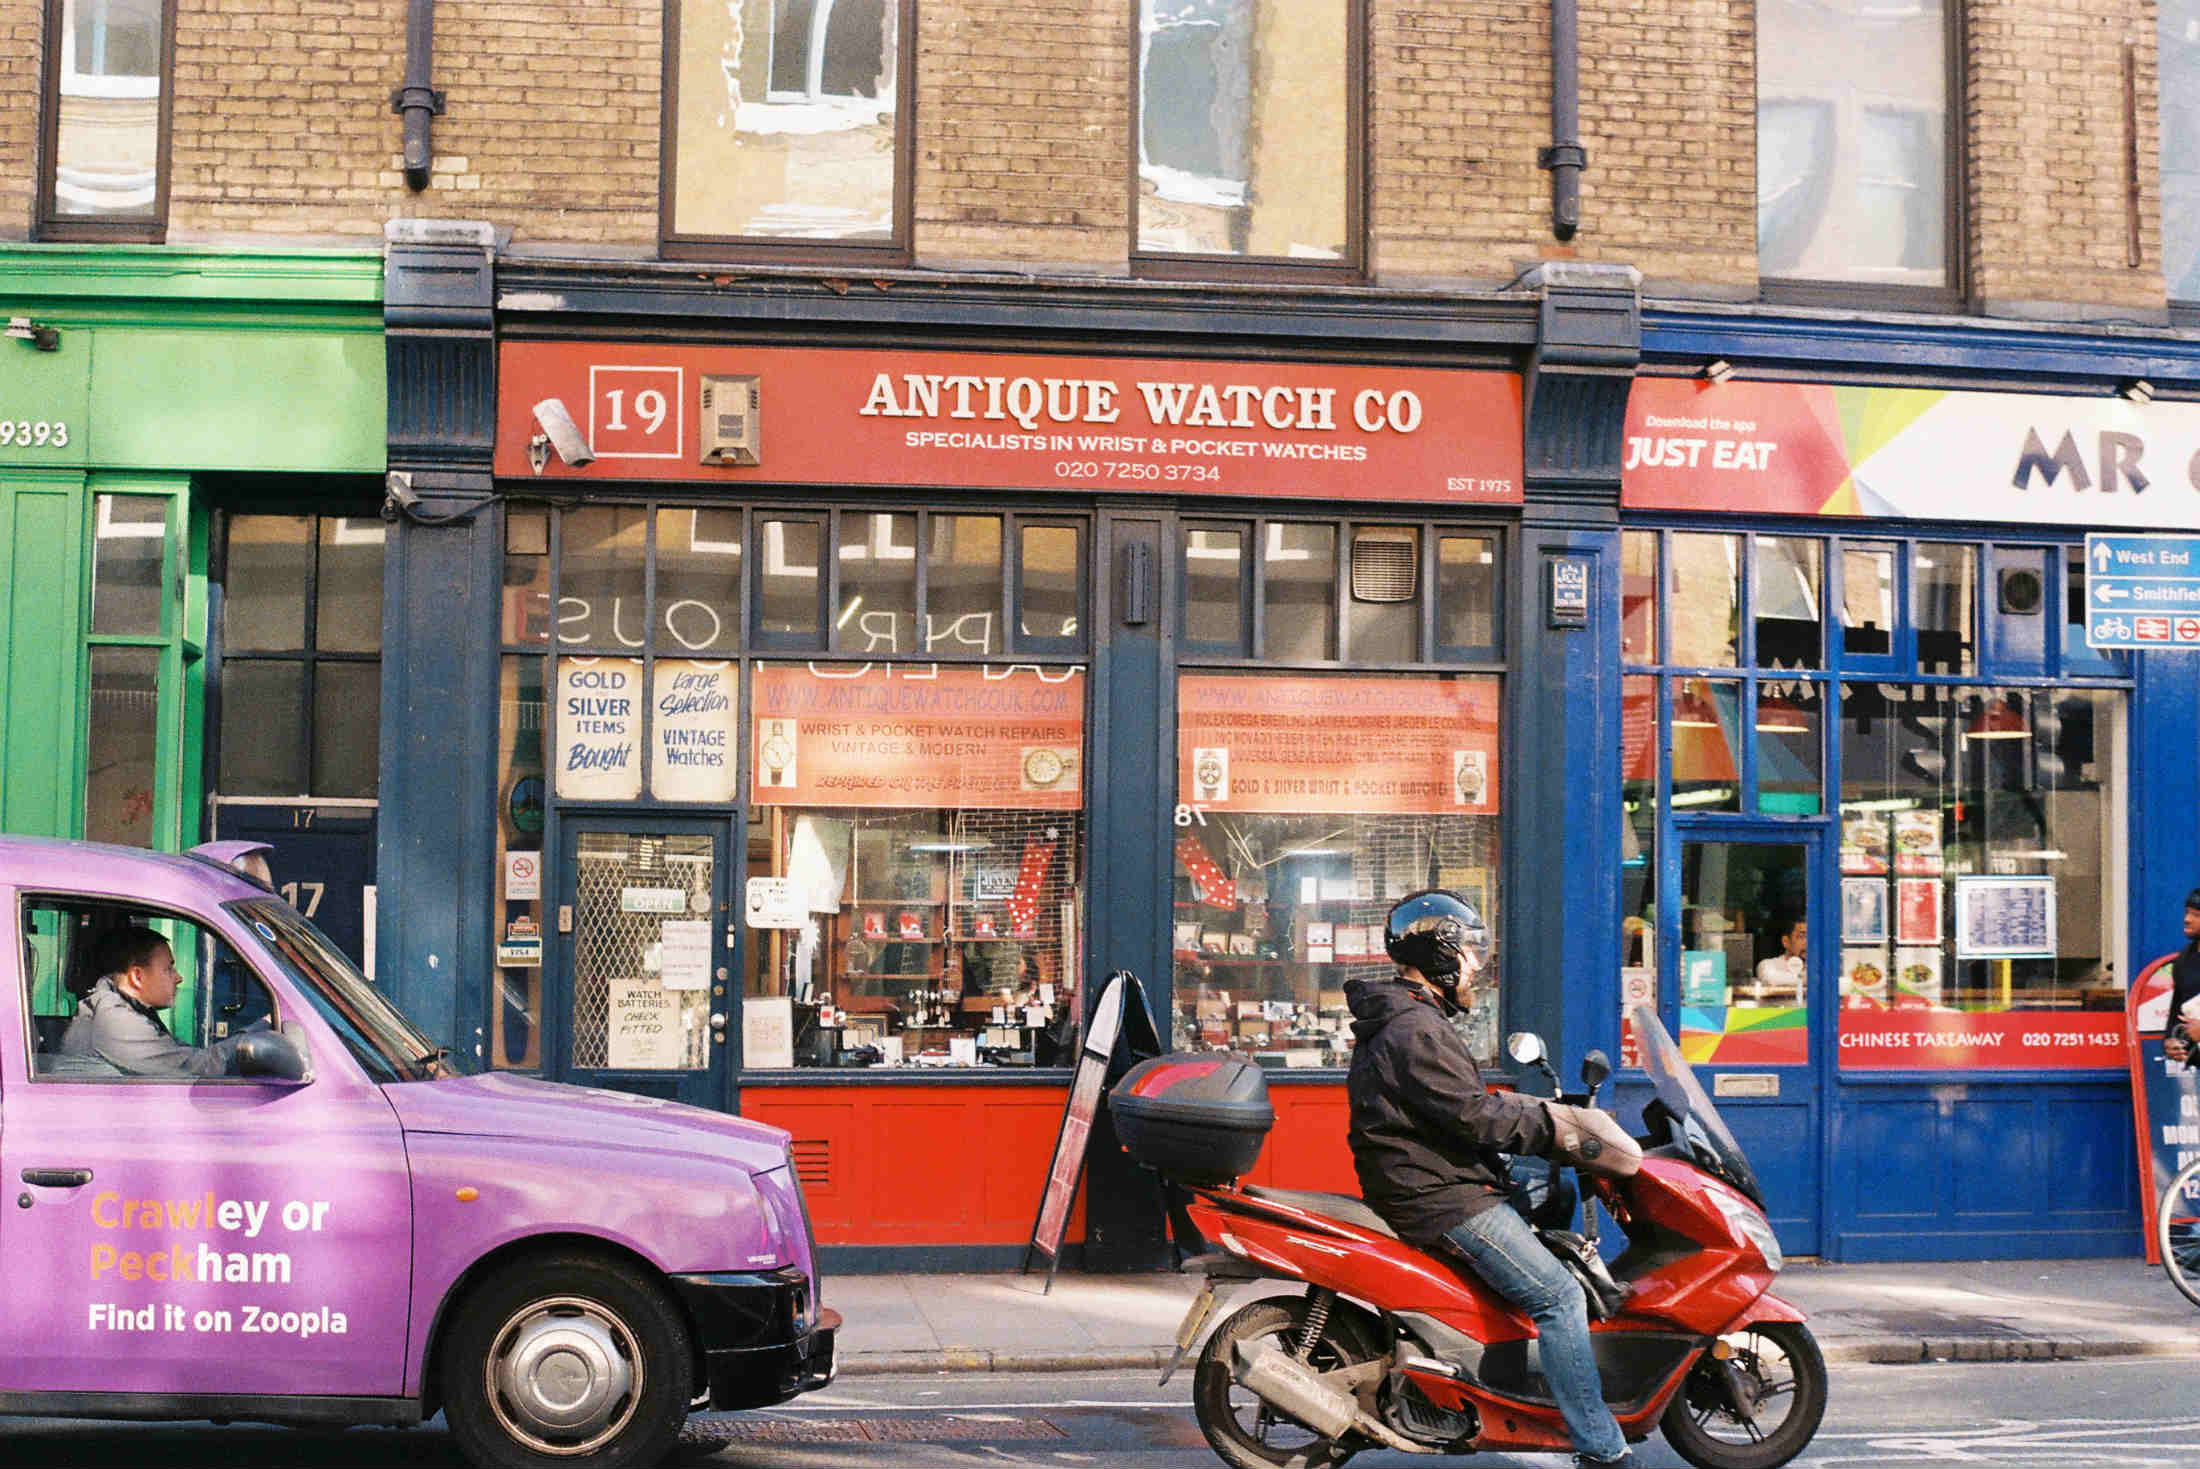 The Aintique Watch Co - Clerkenwell